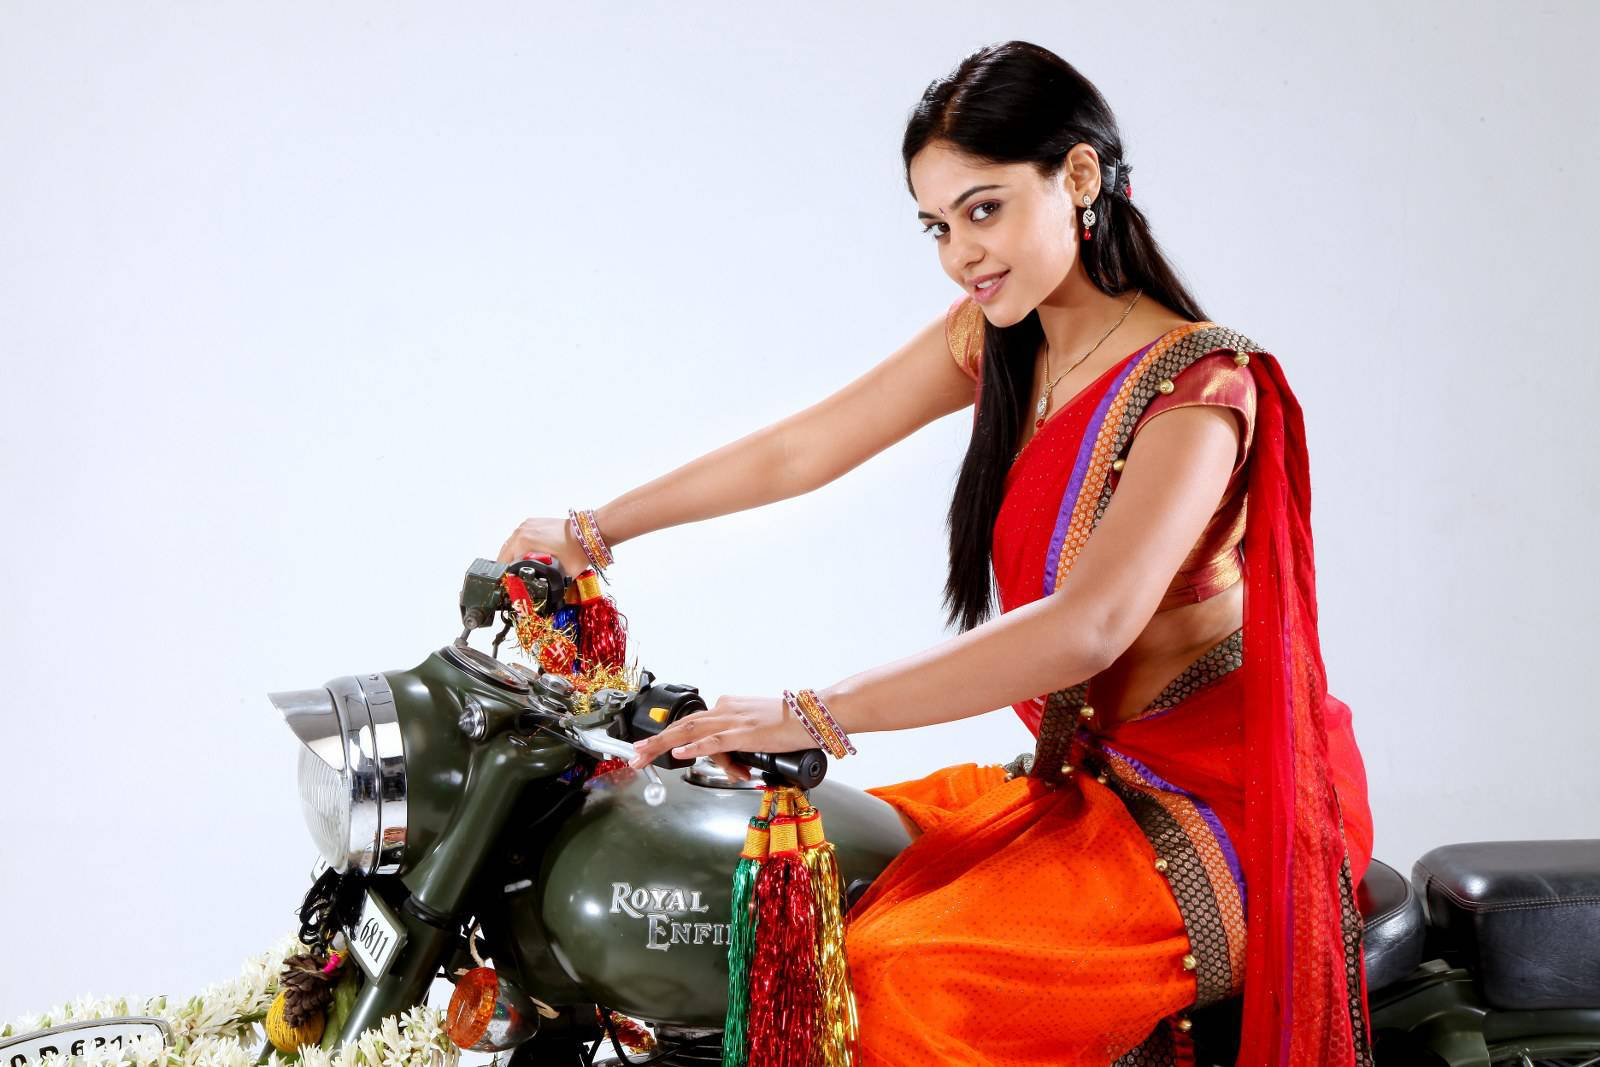 Glamorous Actress Bindu Madhavi Bike Riding Photos